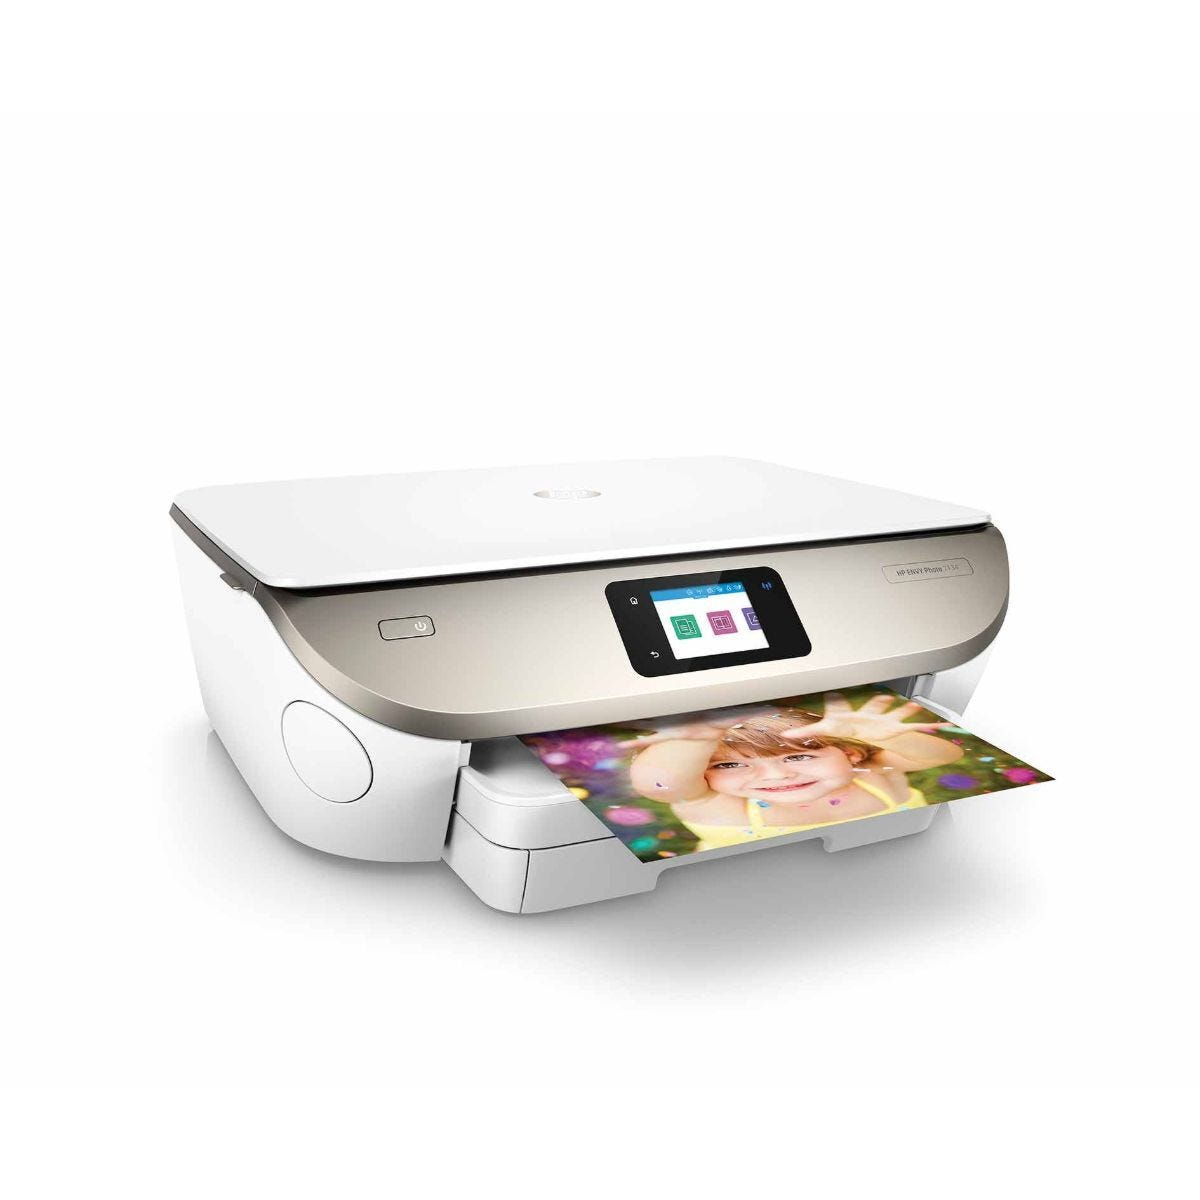 HP Envy Photo 7134 All in One Wireless Inkjet Printer with Free 5 Month Instant Ink Trial